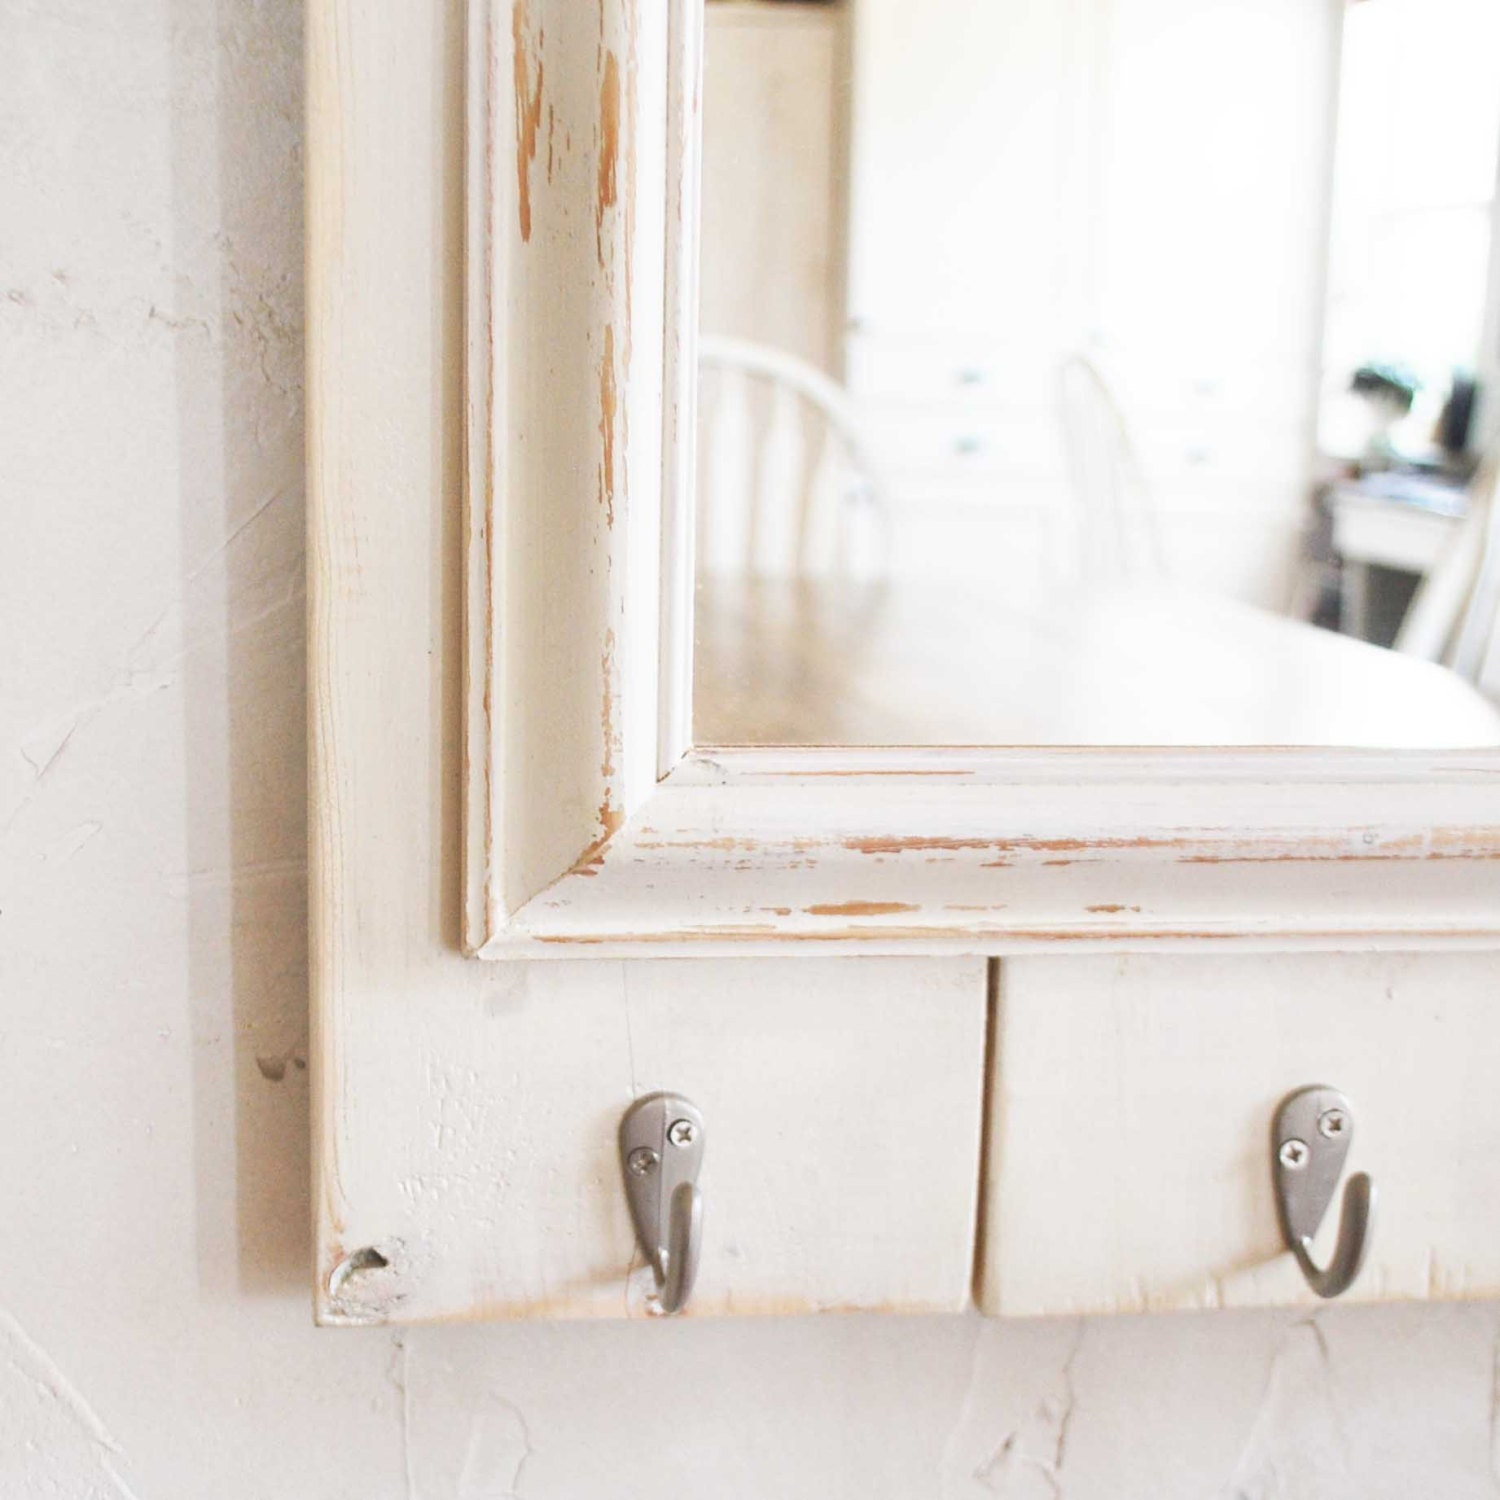 items similar to mirror with hooks entry organizer coat hooks on etsy. Black Bedroom Furniture Sets. Home Design Ideas